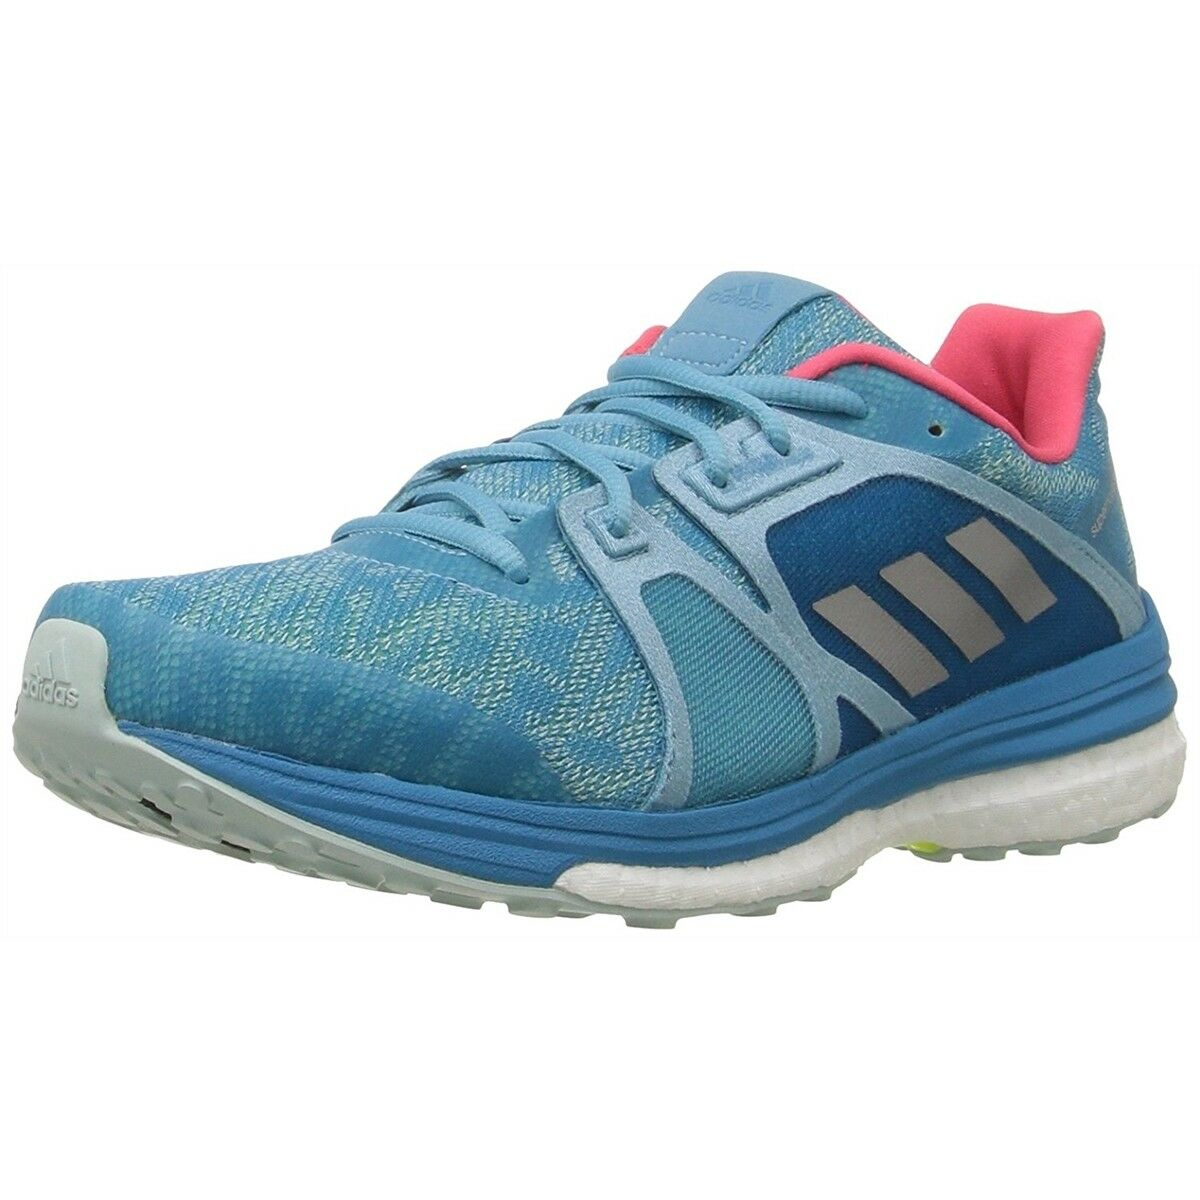 Adidas ATHLETIC Running  Chaussures  Sneakers Supernova Sequence Boost 9 Boost Sequence femmes  NEW 98858a